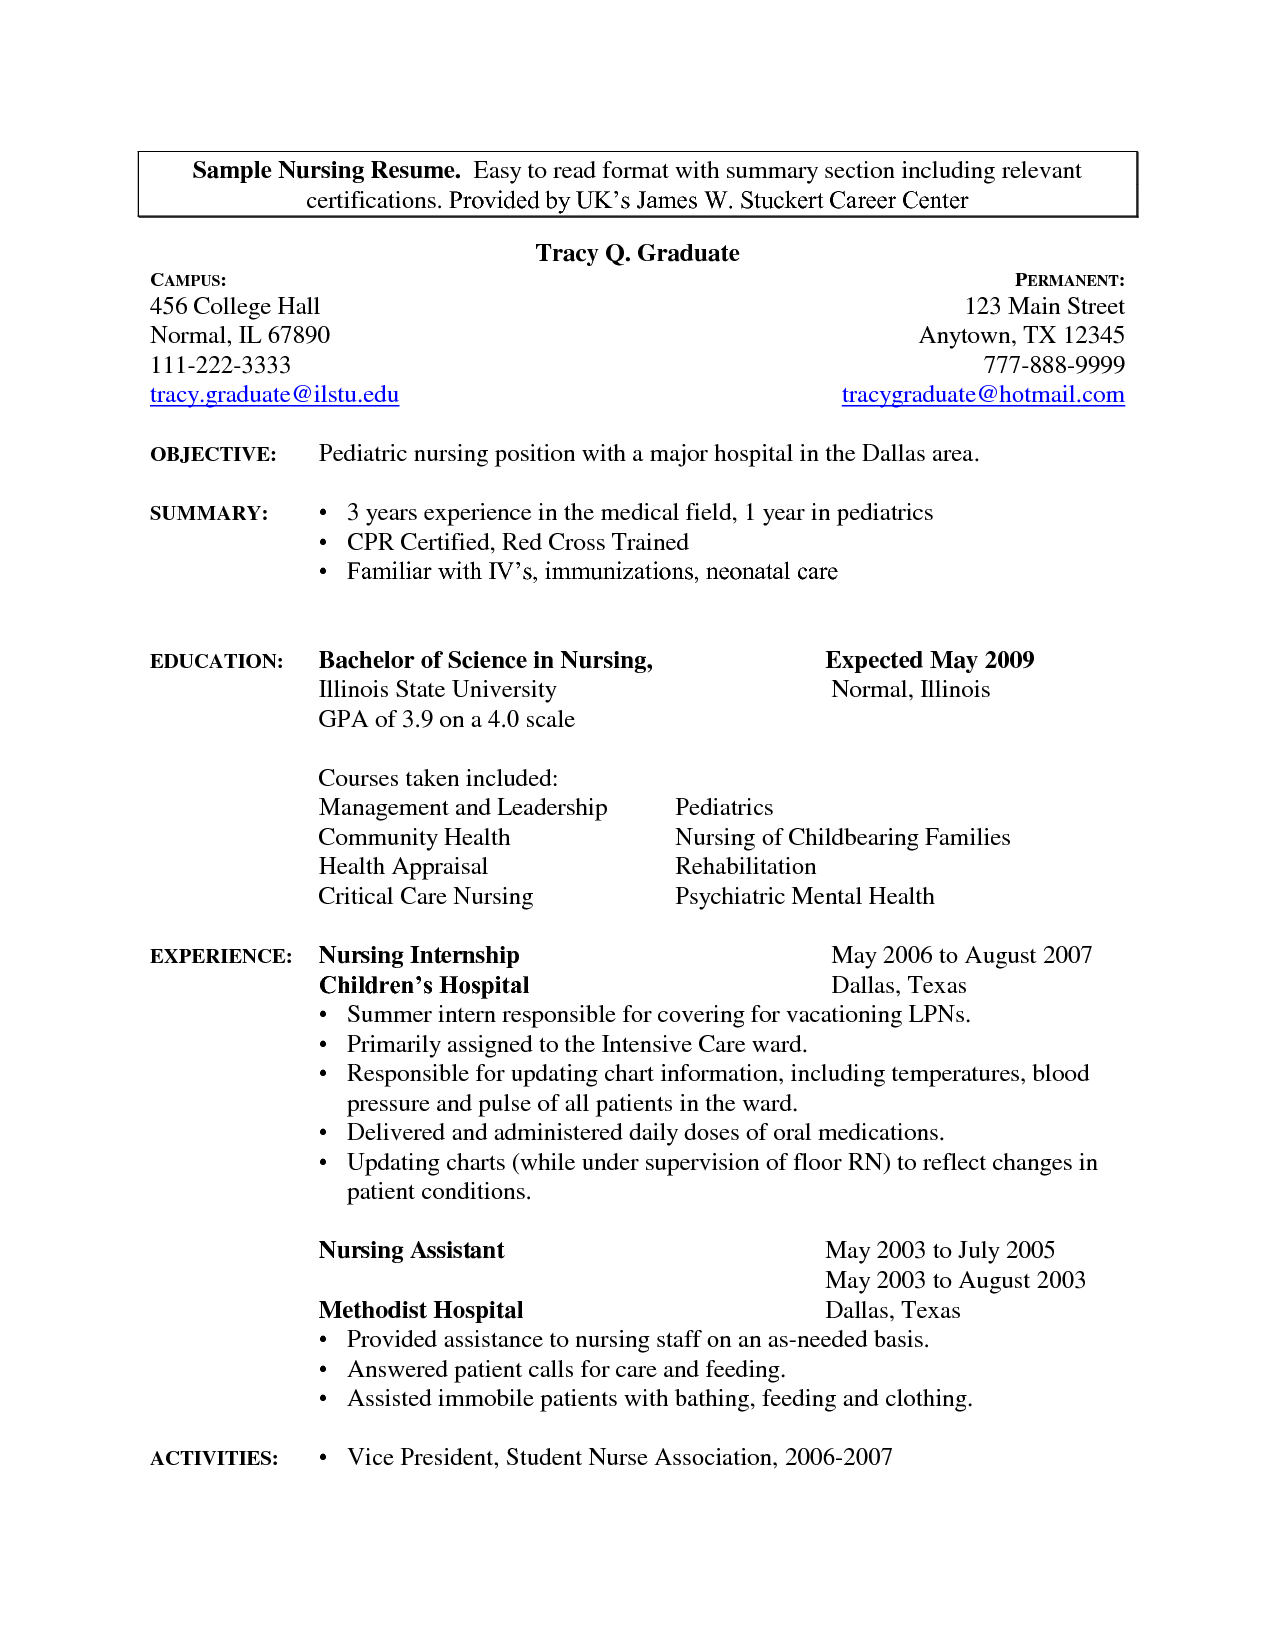 admin resume template entry level essay medical office objective sample graduate assistantship